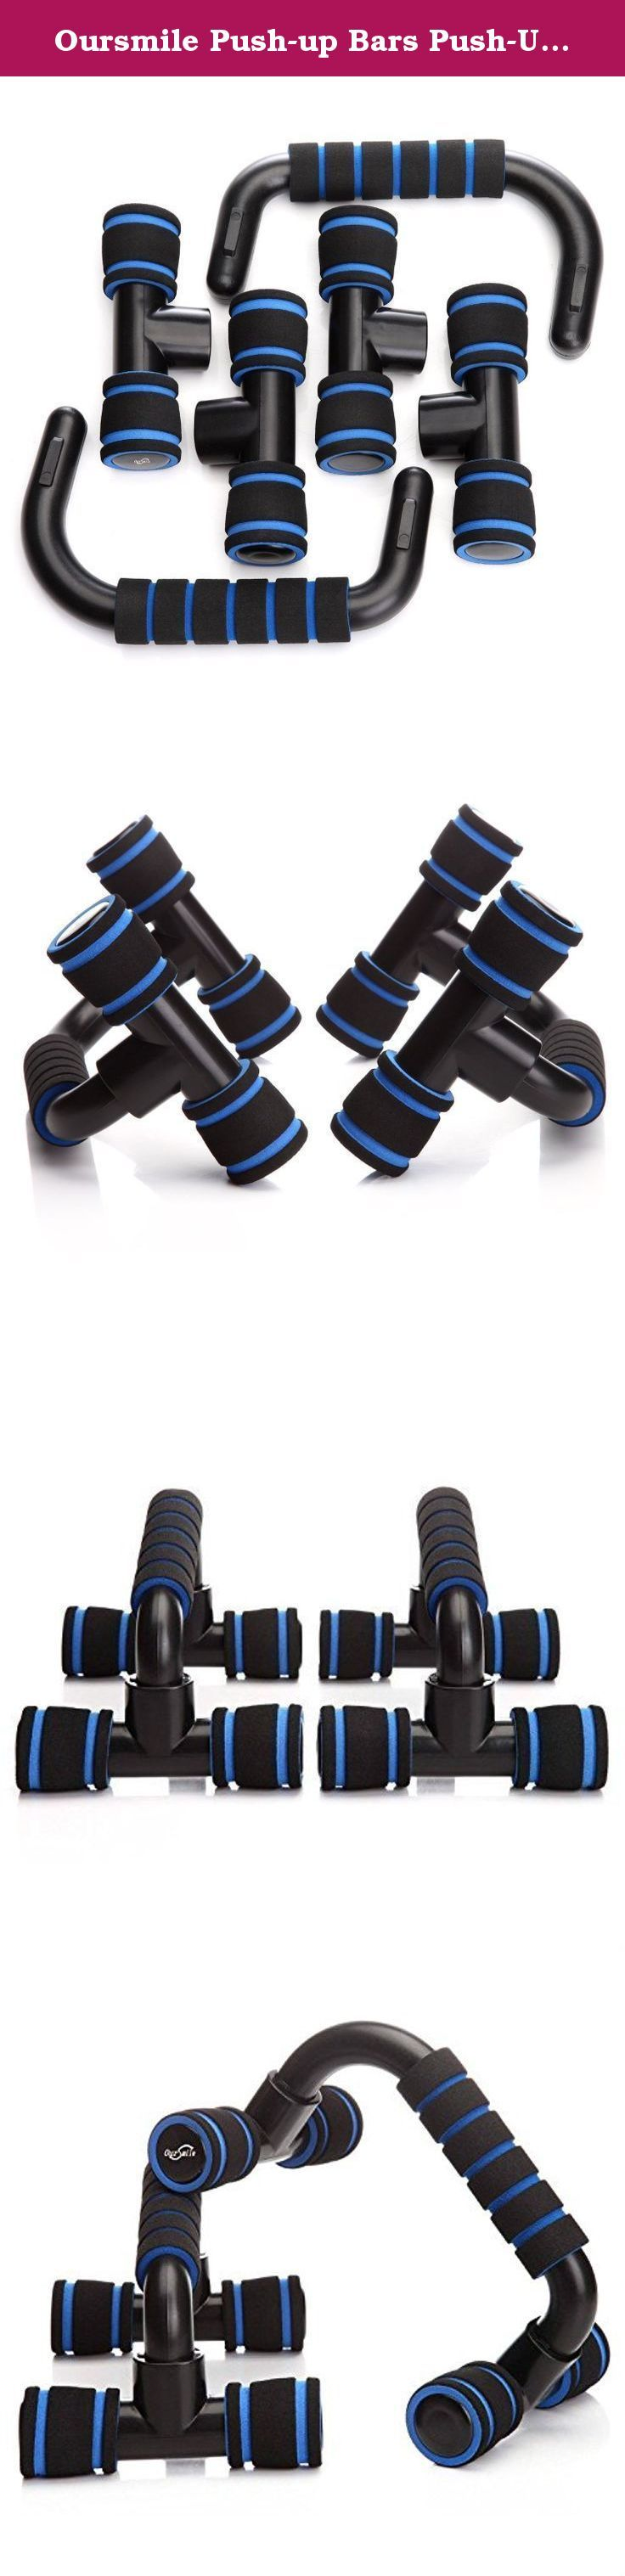 Oursmile Push-up Bars Push-Up Stands Handles Set:Ergonomic,Non-Skid,Foam-Grip,Push-Up Stands Suitable for any Pushup Training Program for Men or Women Workout with Comfortable Grip(Black+Blue). Oursmile 1 pair Push-up Bars-Push-Up Stands Features: - Strong, durable Push-up Bars and very stable - have no fear that they'll break, bend or collapse - They are stable and do not wobble - Light and portable - Comfortable foam grips - Non-slip Benefits: - Strengthen and sculpt shoulders, chest…